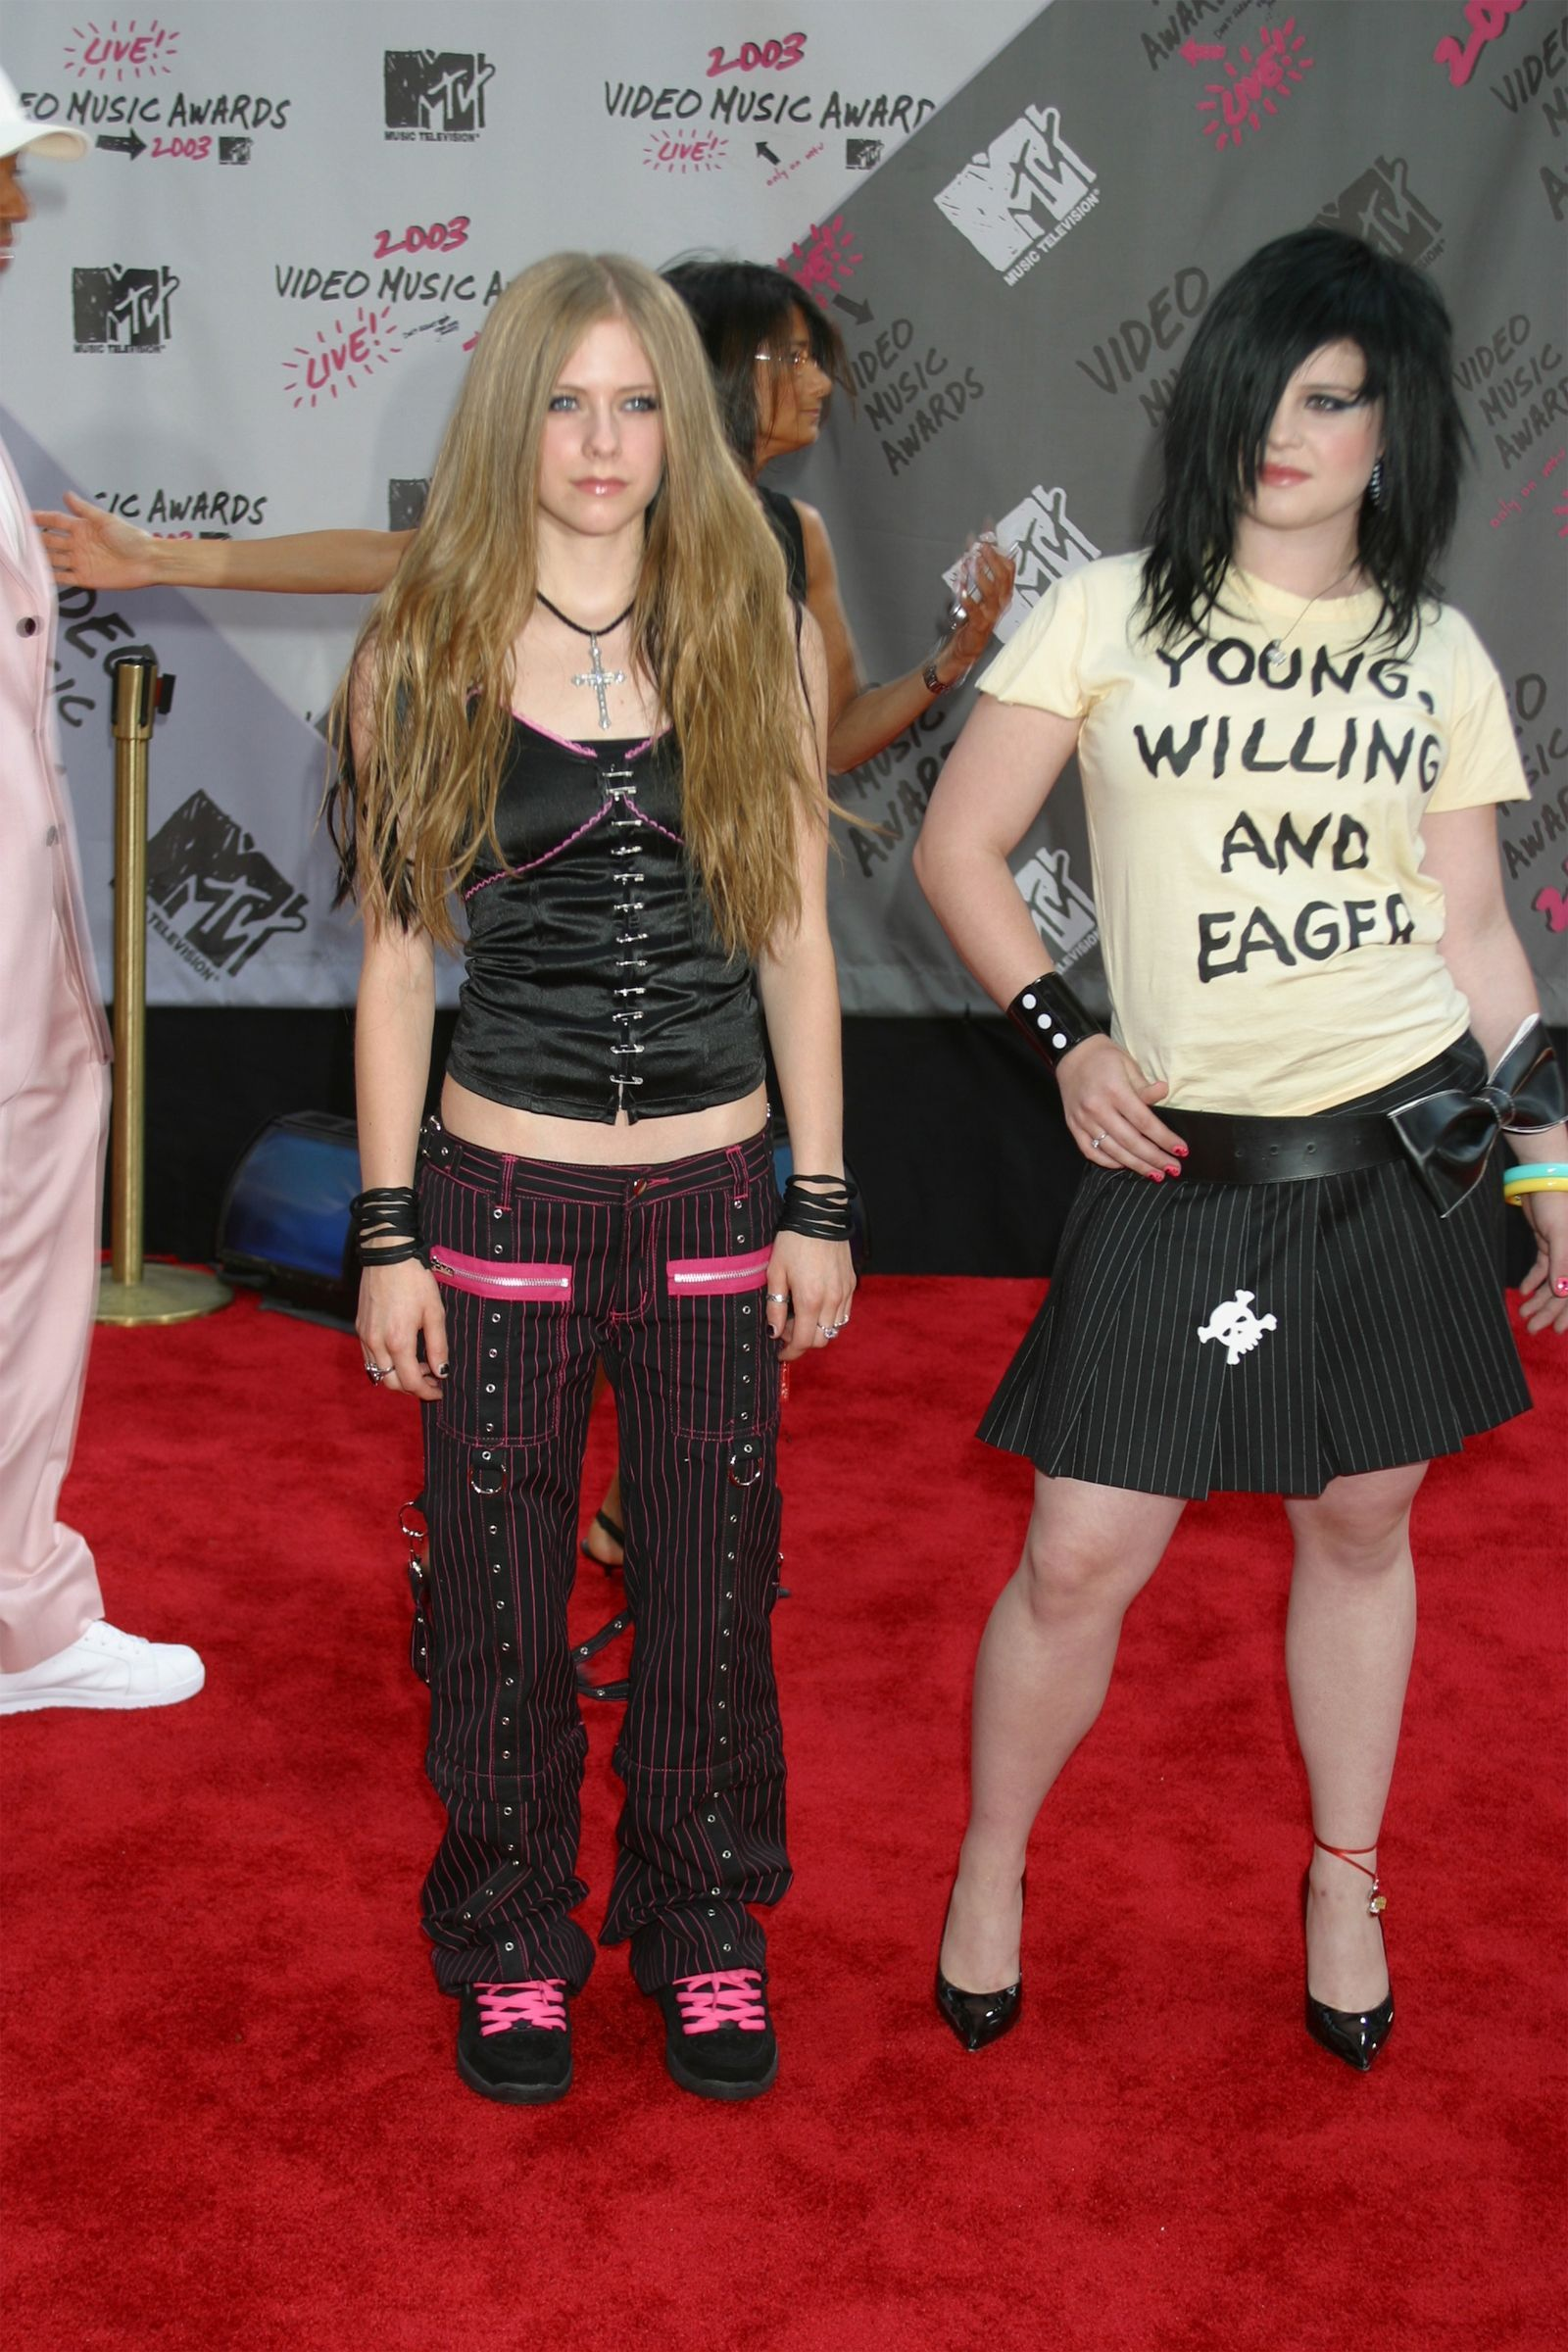 The 50 Craziest Most Cringe Worthy Outfits Celebrities Wore In The Early 2000s Early 2000s Fashion 2000s Fashion Outfits 2000s Fashion Trends